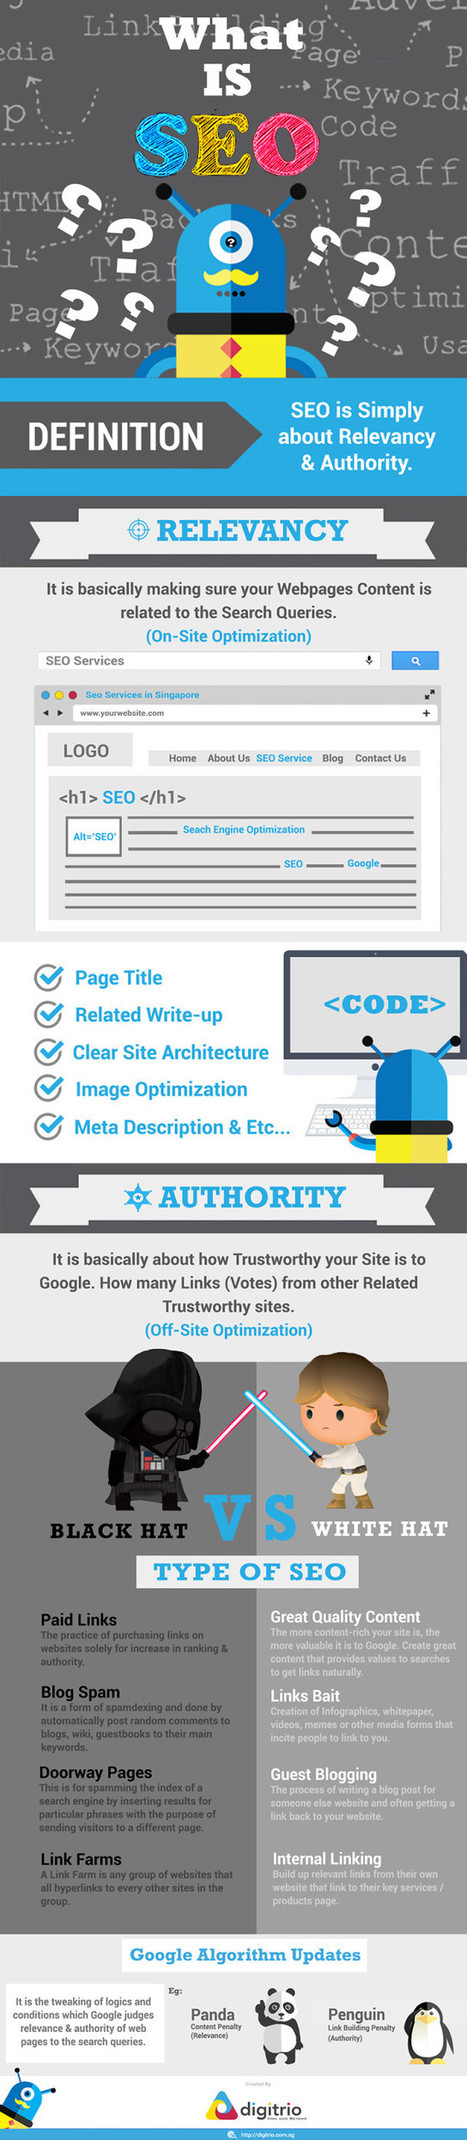 Do You Know What SEO Is? | The Best Infographics | Scoop.it